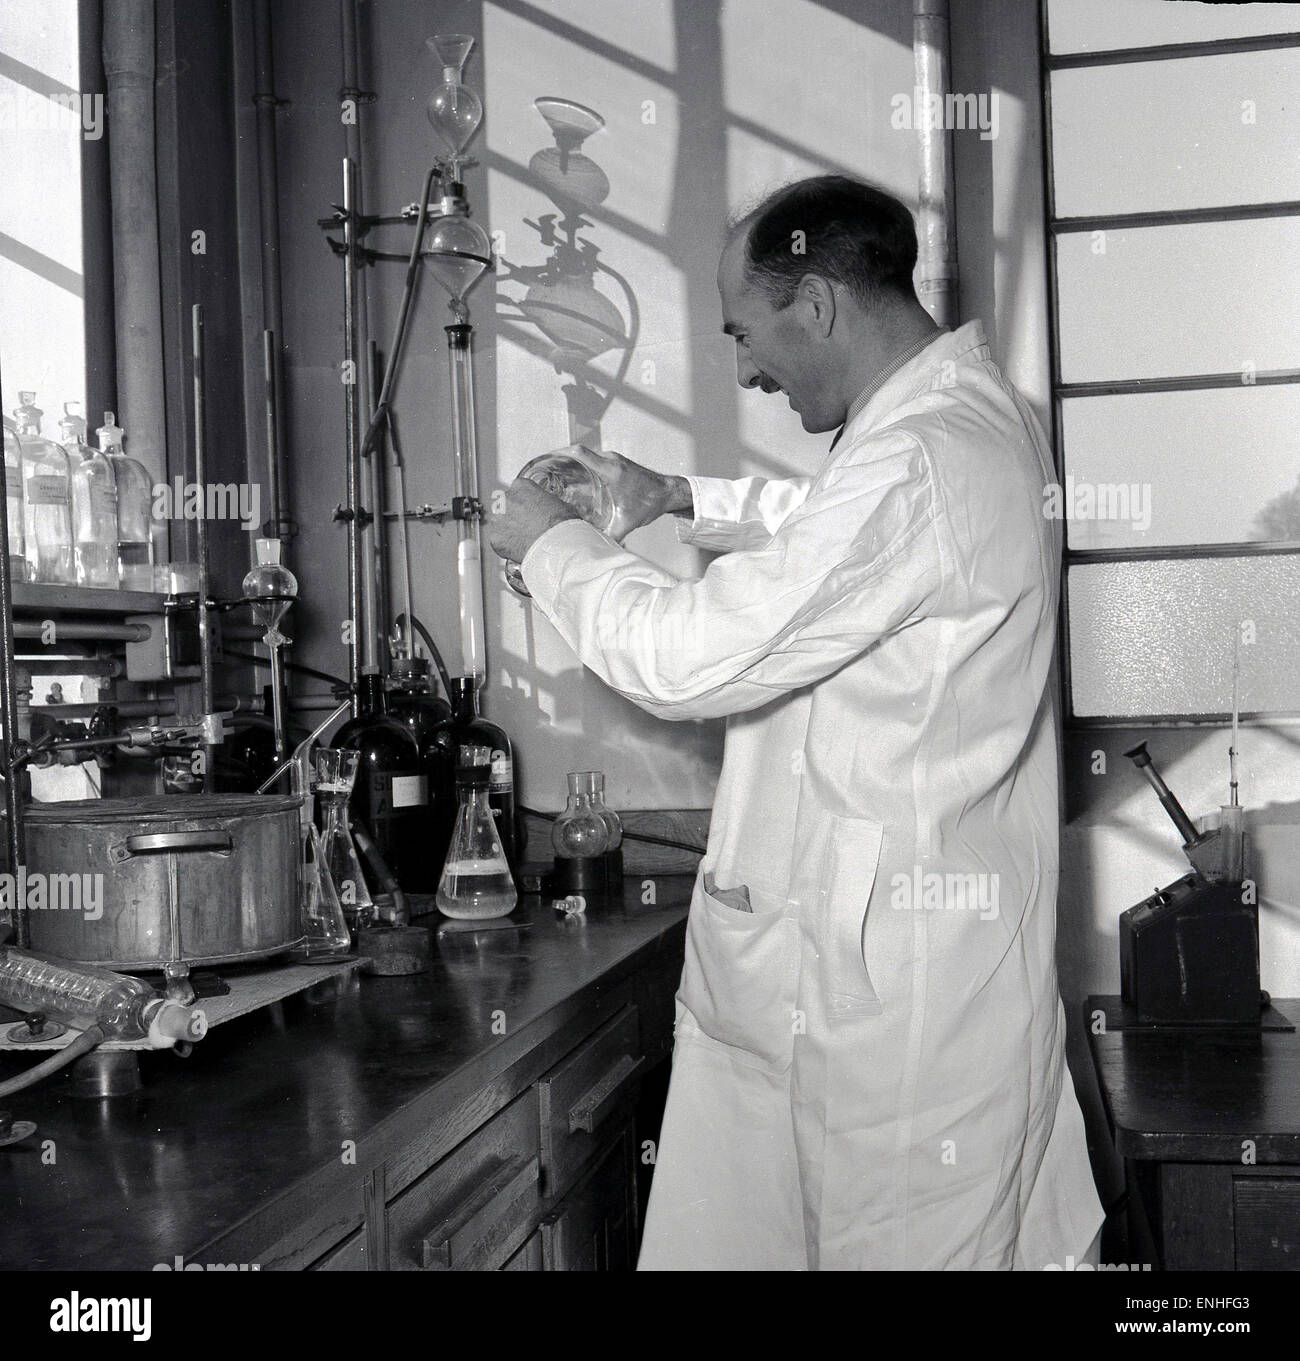 1950s  Historical  England  Male Scientist In White Coat